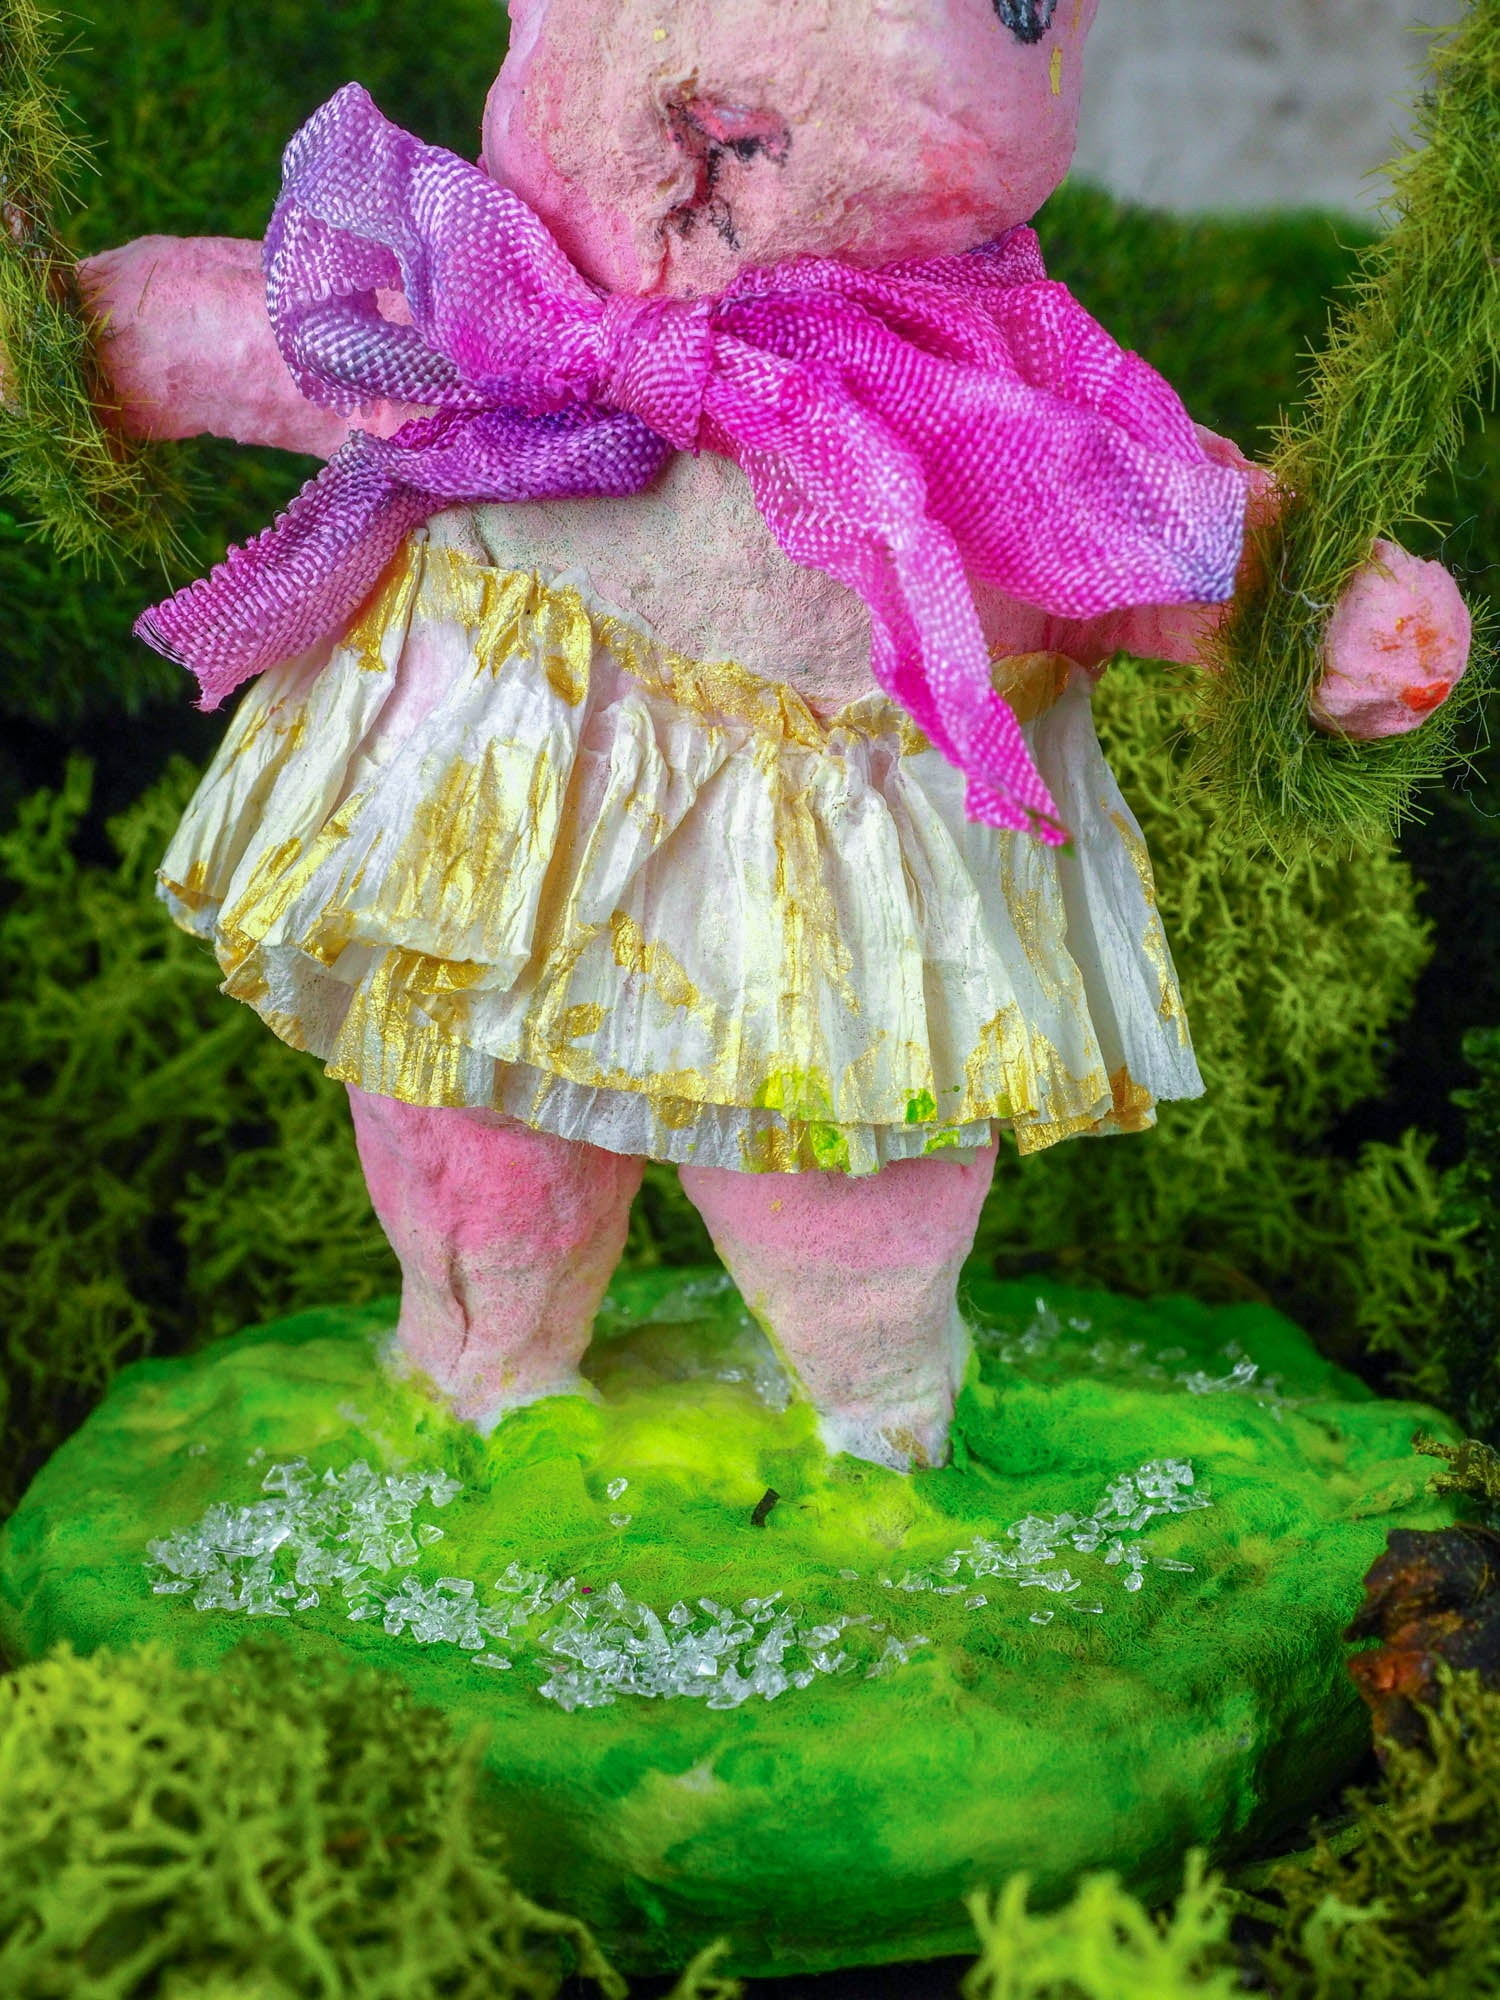 "Spring always inspires Danita to make beautiful handmade decorations for when the flowers start to bloom, just like this 4"" spun cotton handmade pink Easter bunny rabbit art doll by Danita, hand painted and dressed in a hand painted polka dot paper skirt."